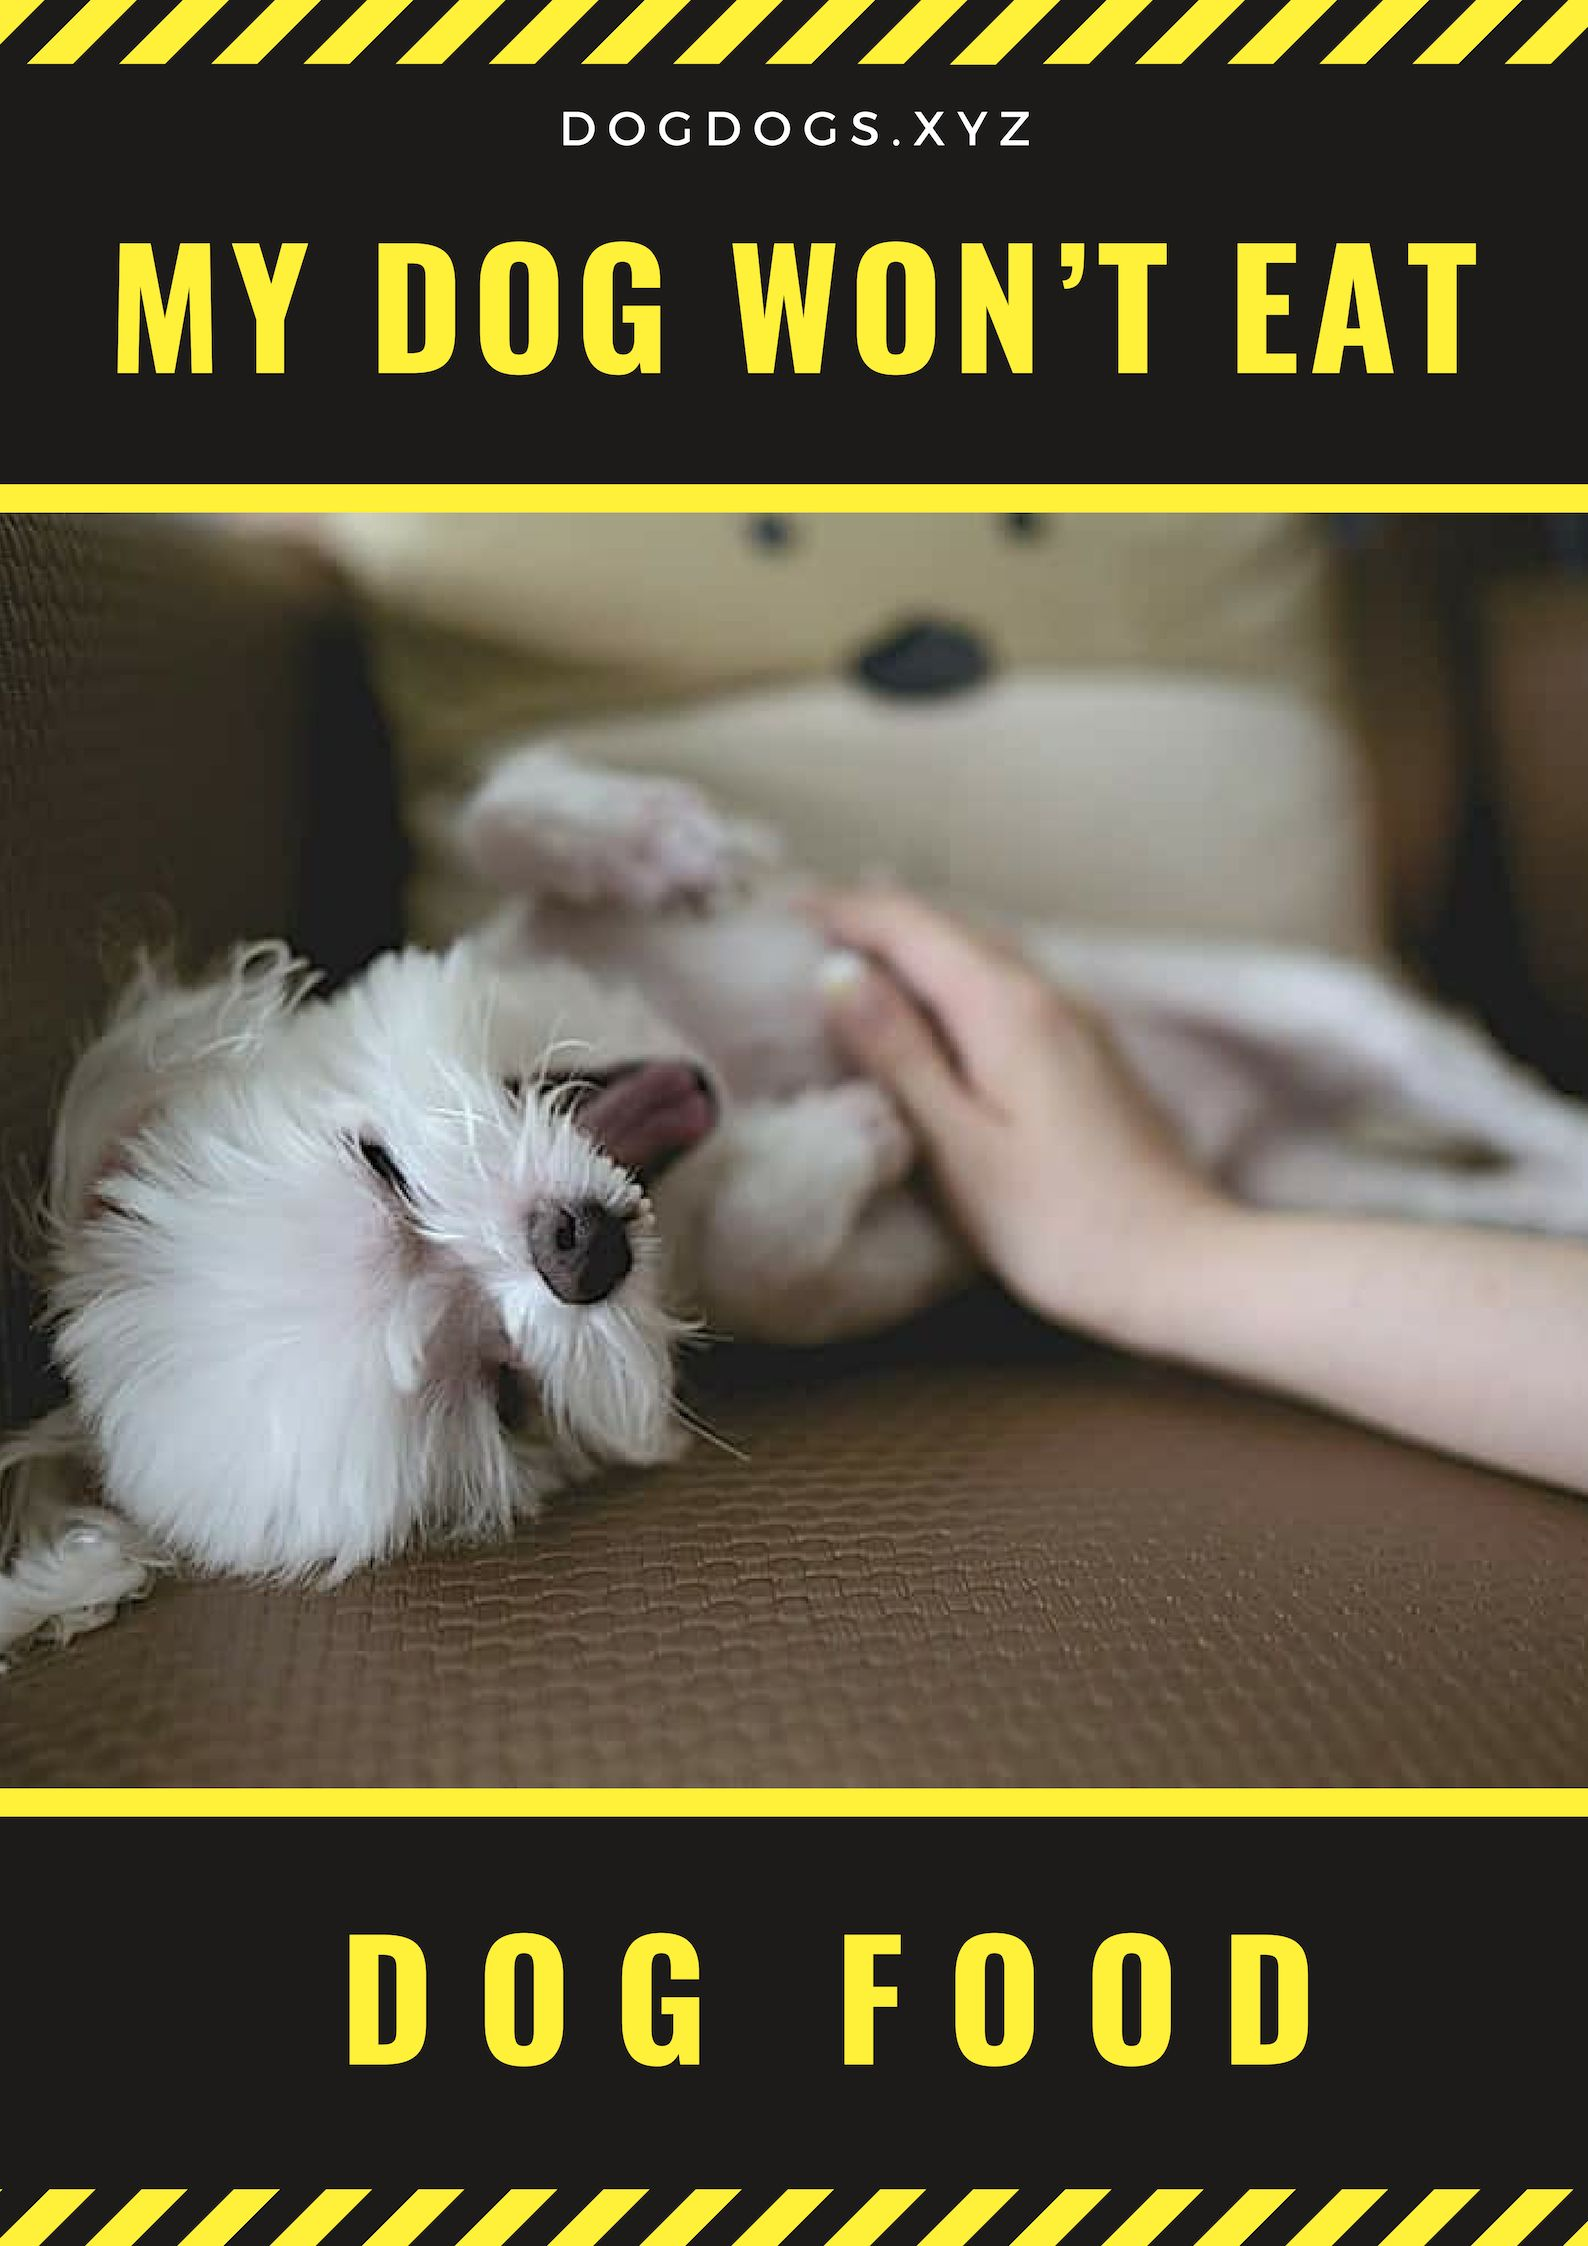 Have You Detected Your Dog Showing Other Outlandish Behaviors As